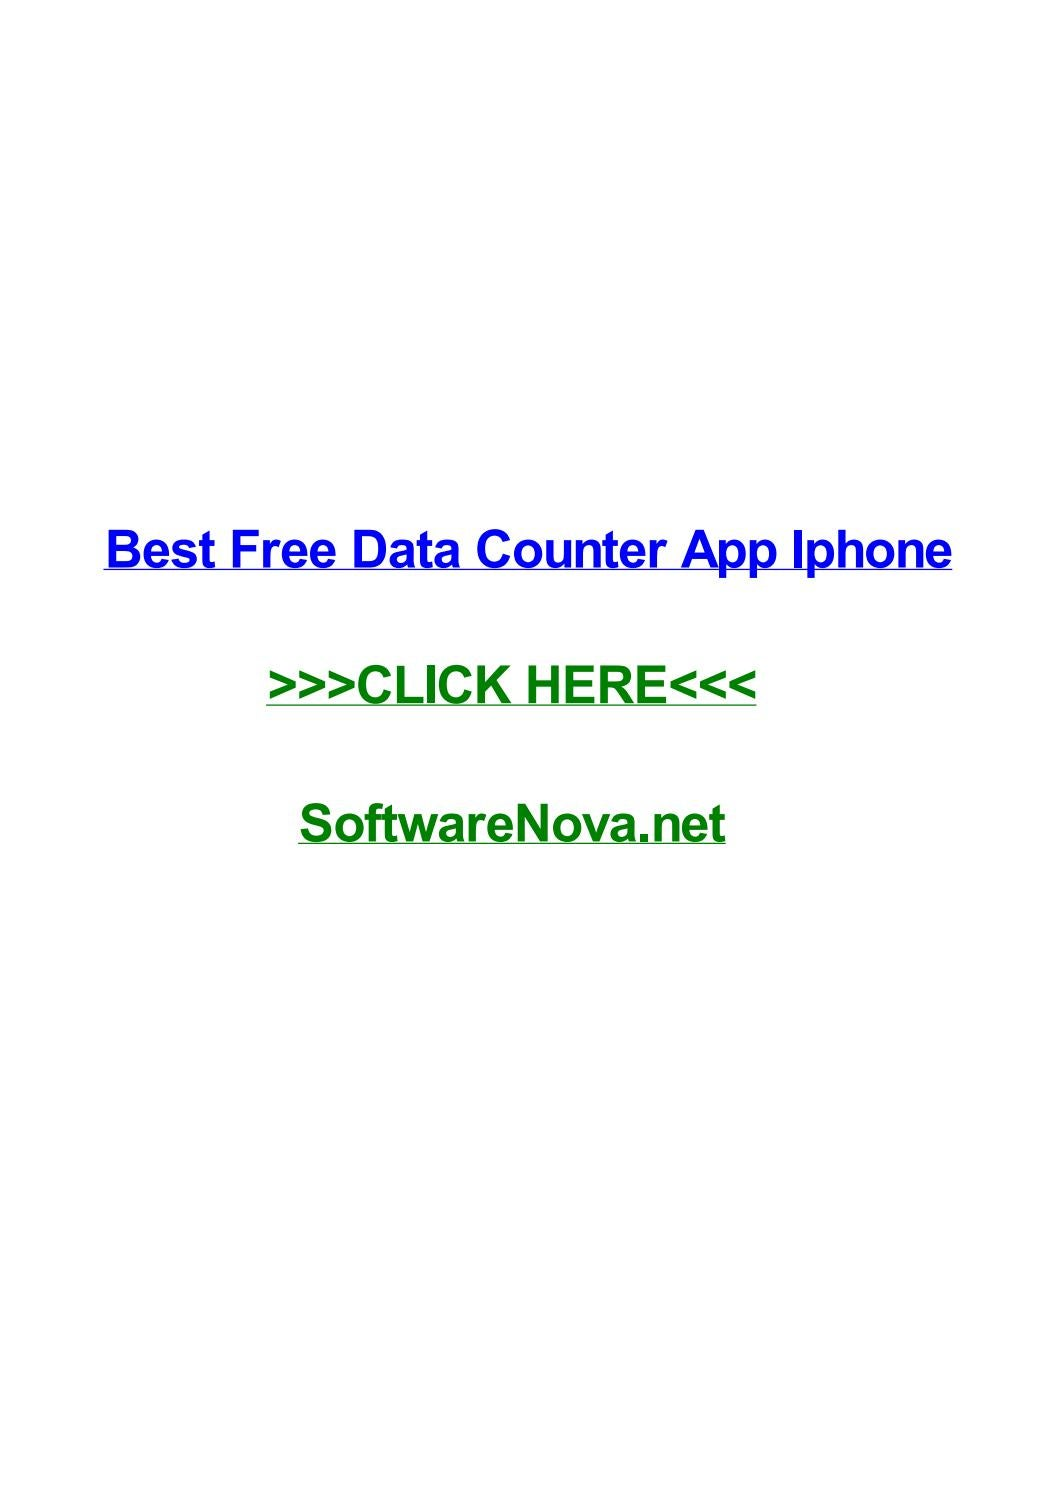 Best free data counter app iphone by tiffanyrarzd - issuu